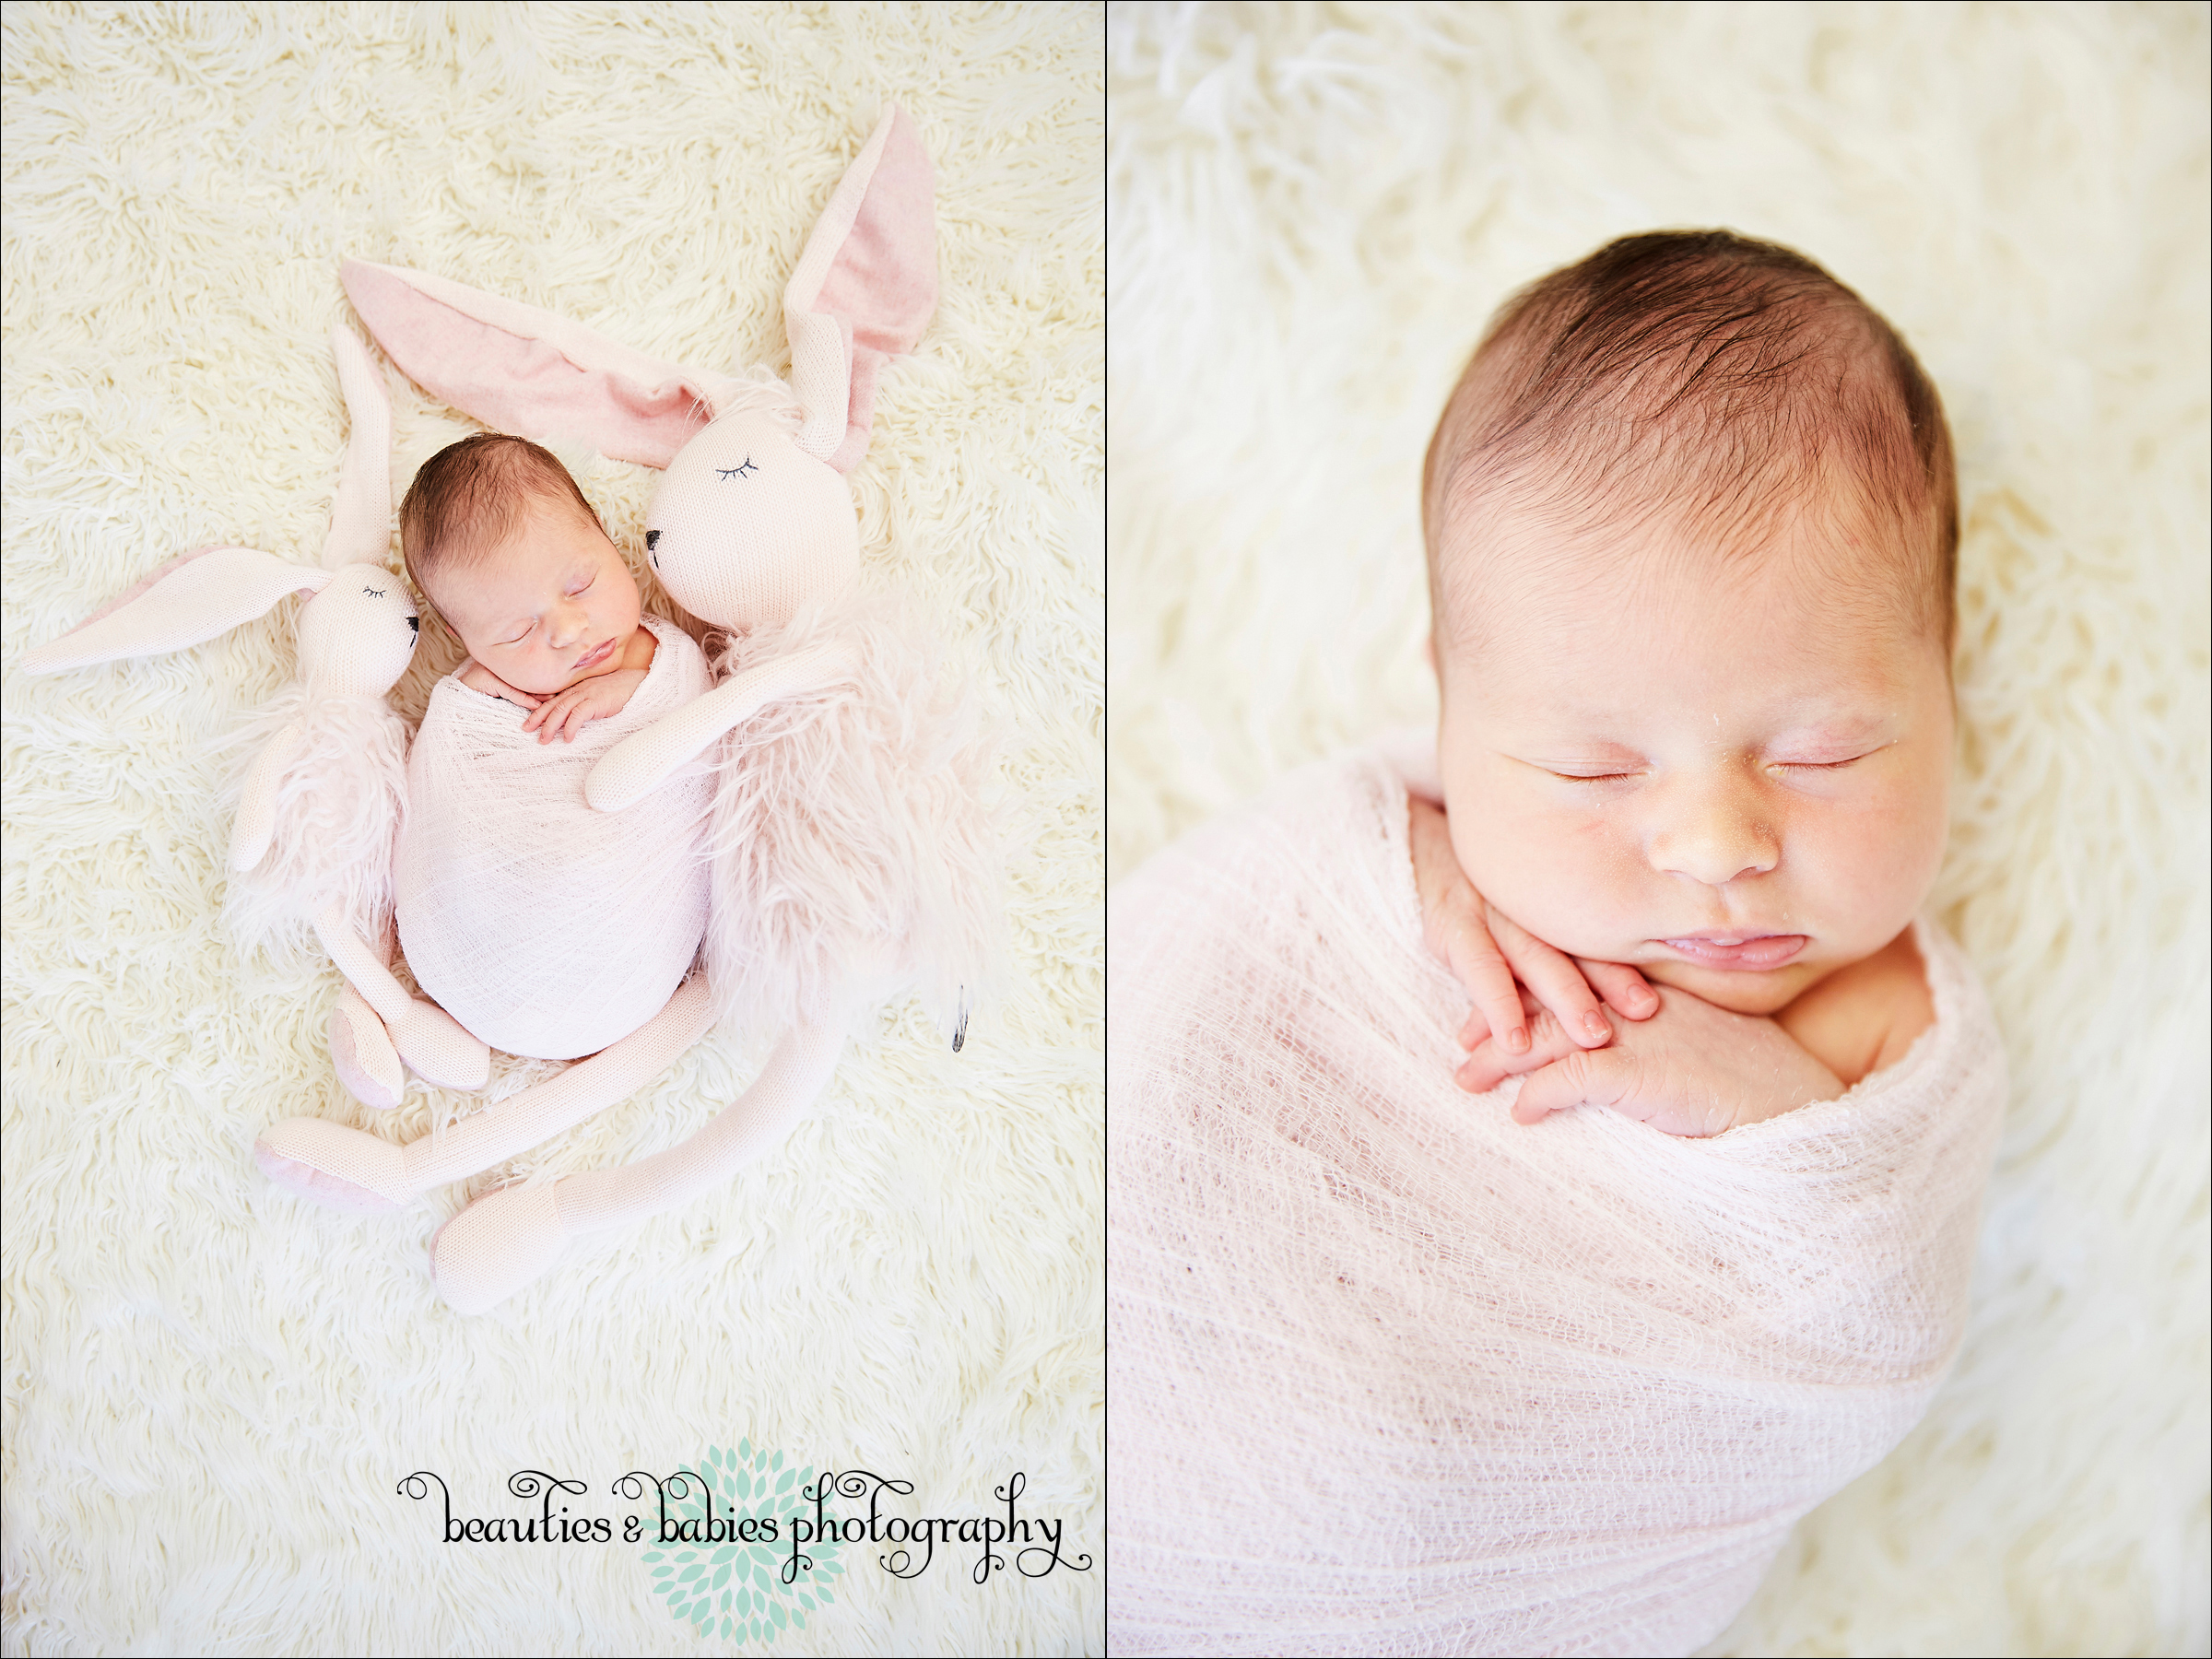 in-home newborn and family photography Los Angeles photographer